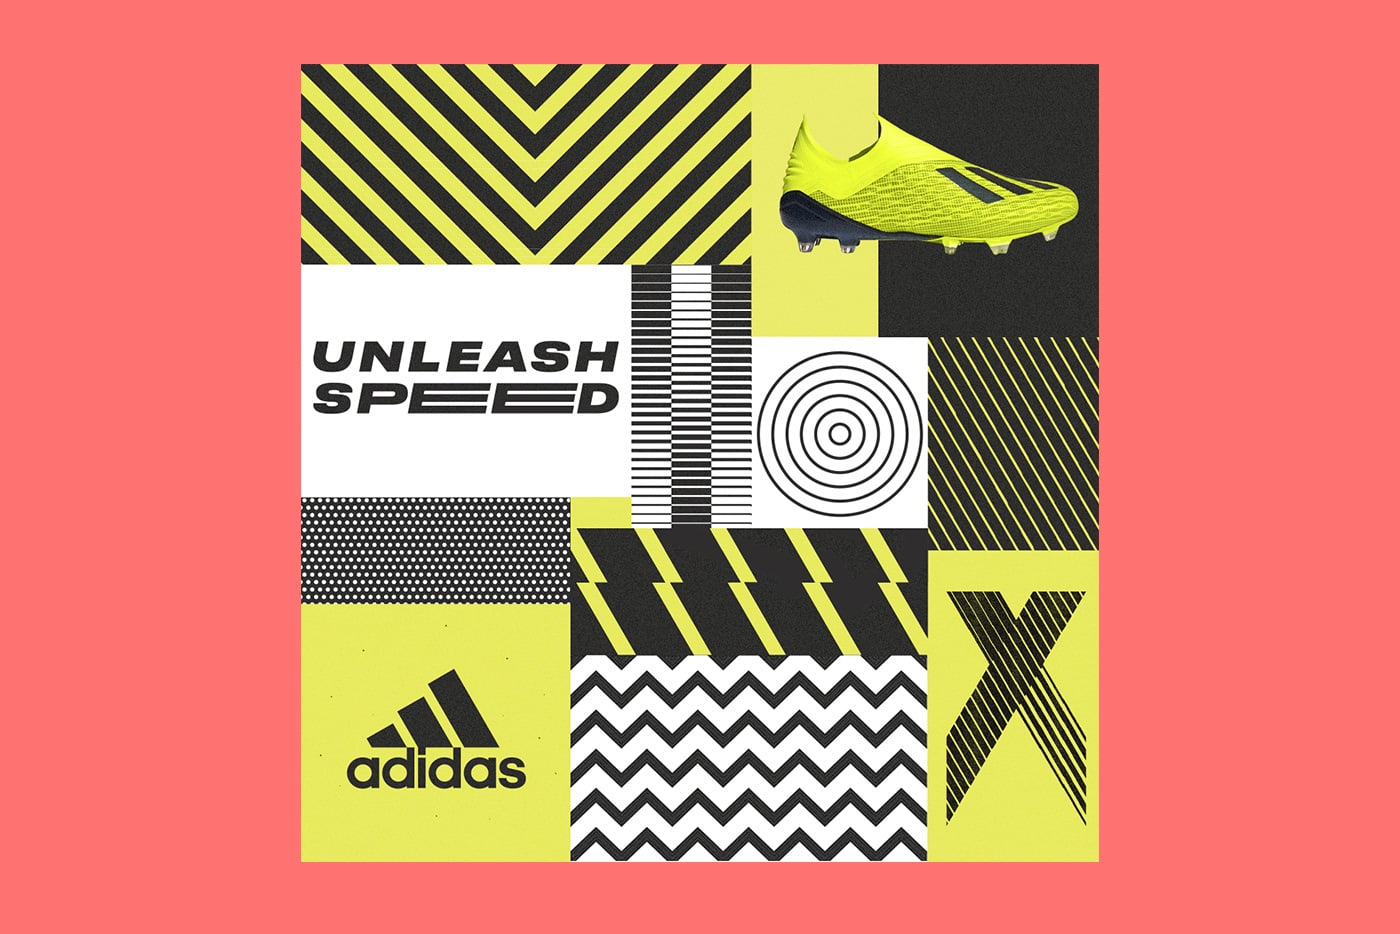 tuyo Joven Abierto  Adidas: Graphic Design, Illustration and advertising - WNW